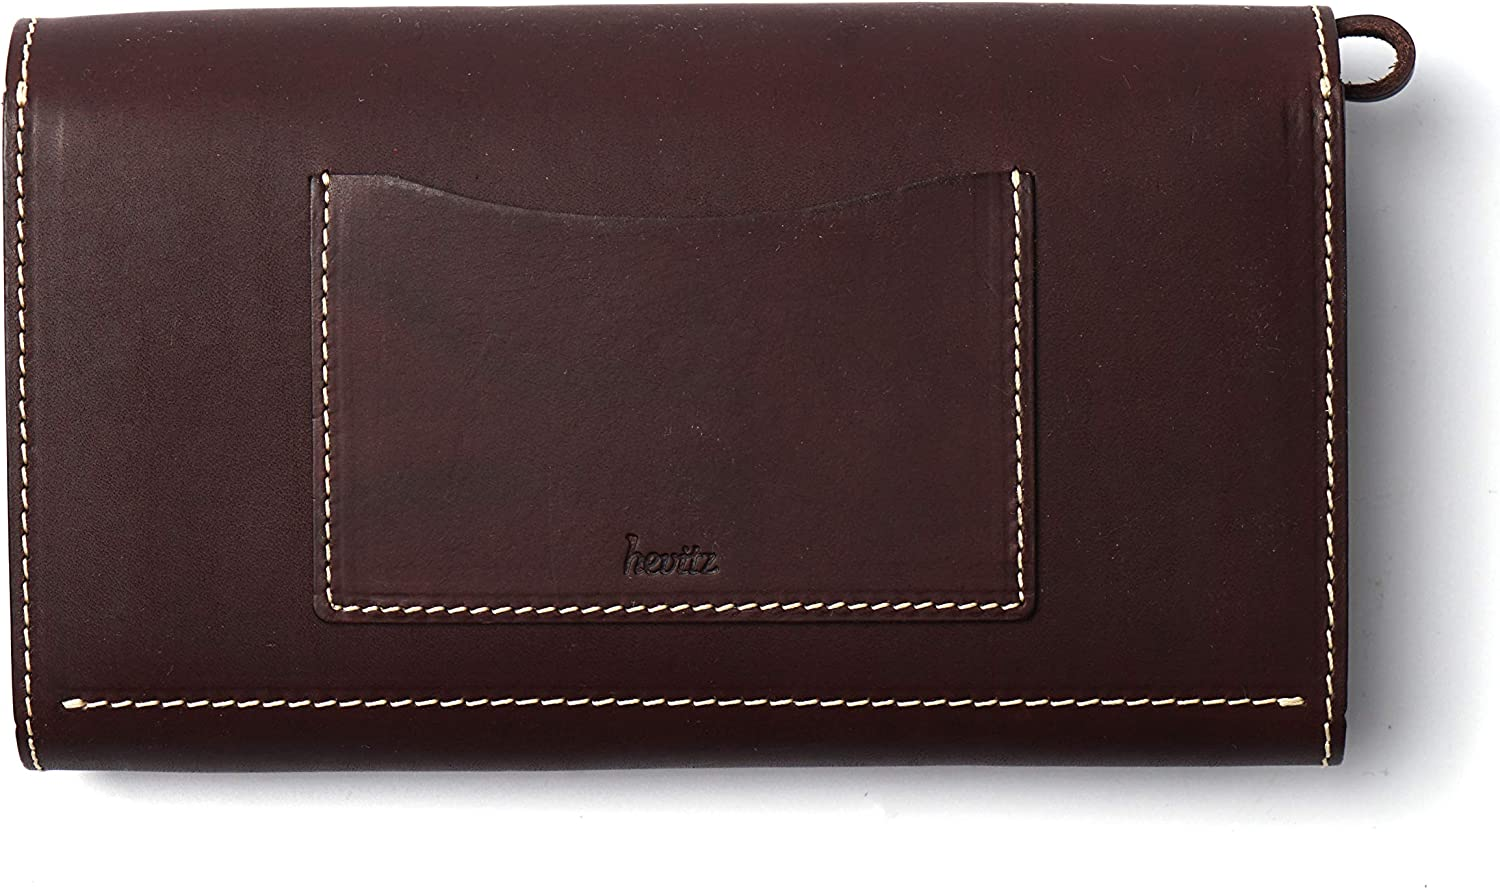 hevitz 3004 Retro Wallet